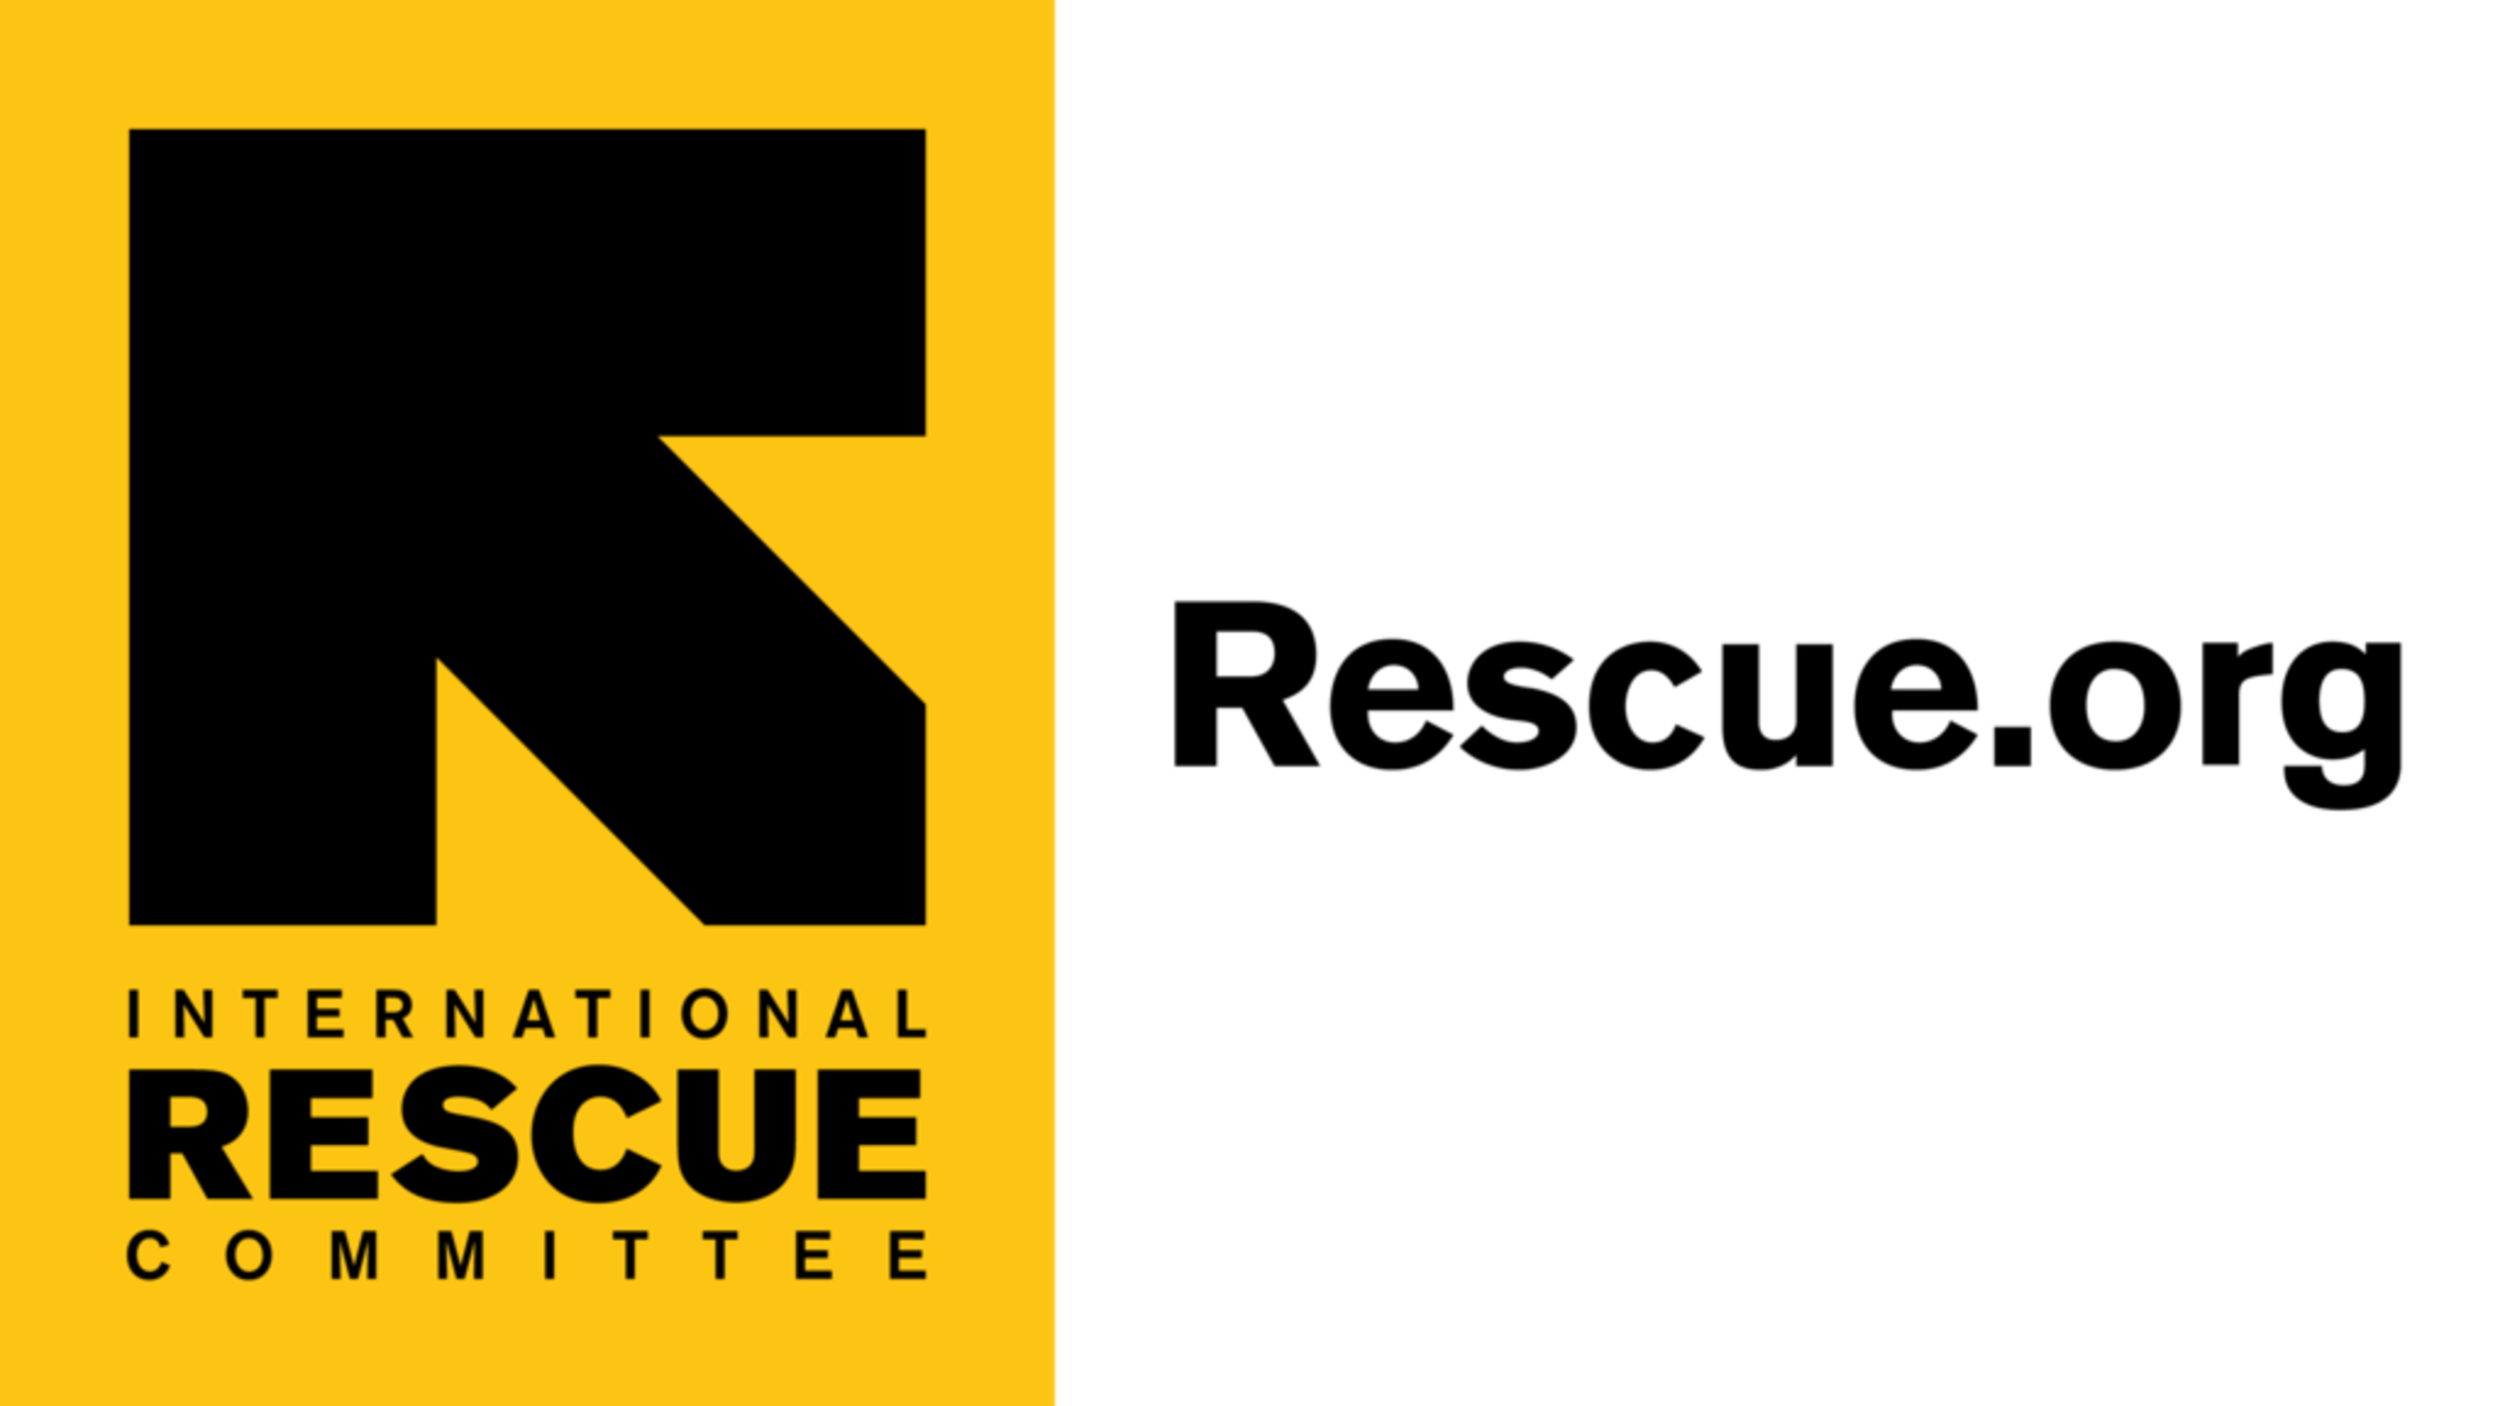 When there is a crisis the IRC is there, whether at the U.S.-Mexico border or in war-torn Yemen. We respond to the world's worst crises helping refugees to survive, recover and rebuild their lives.